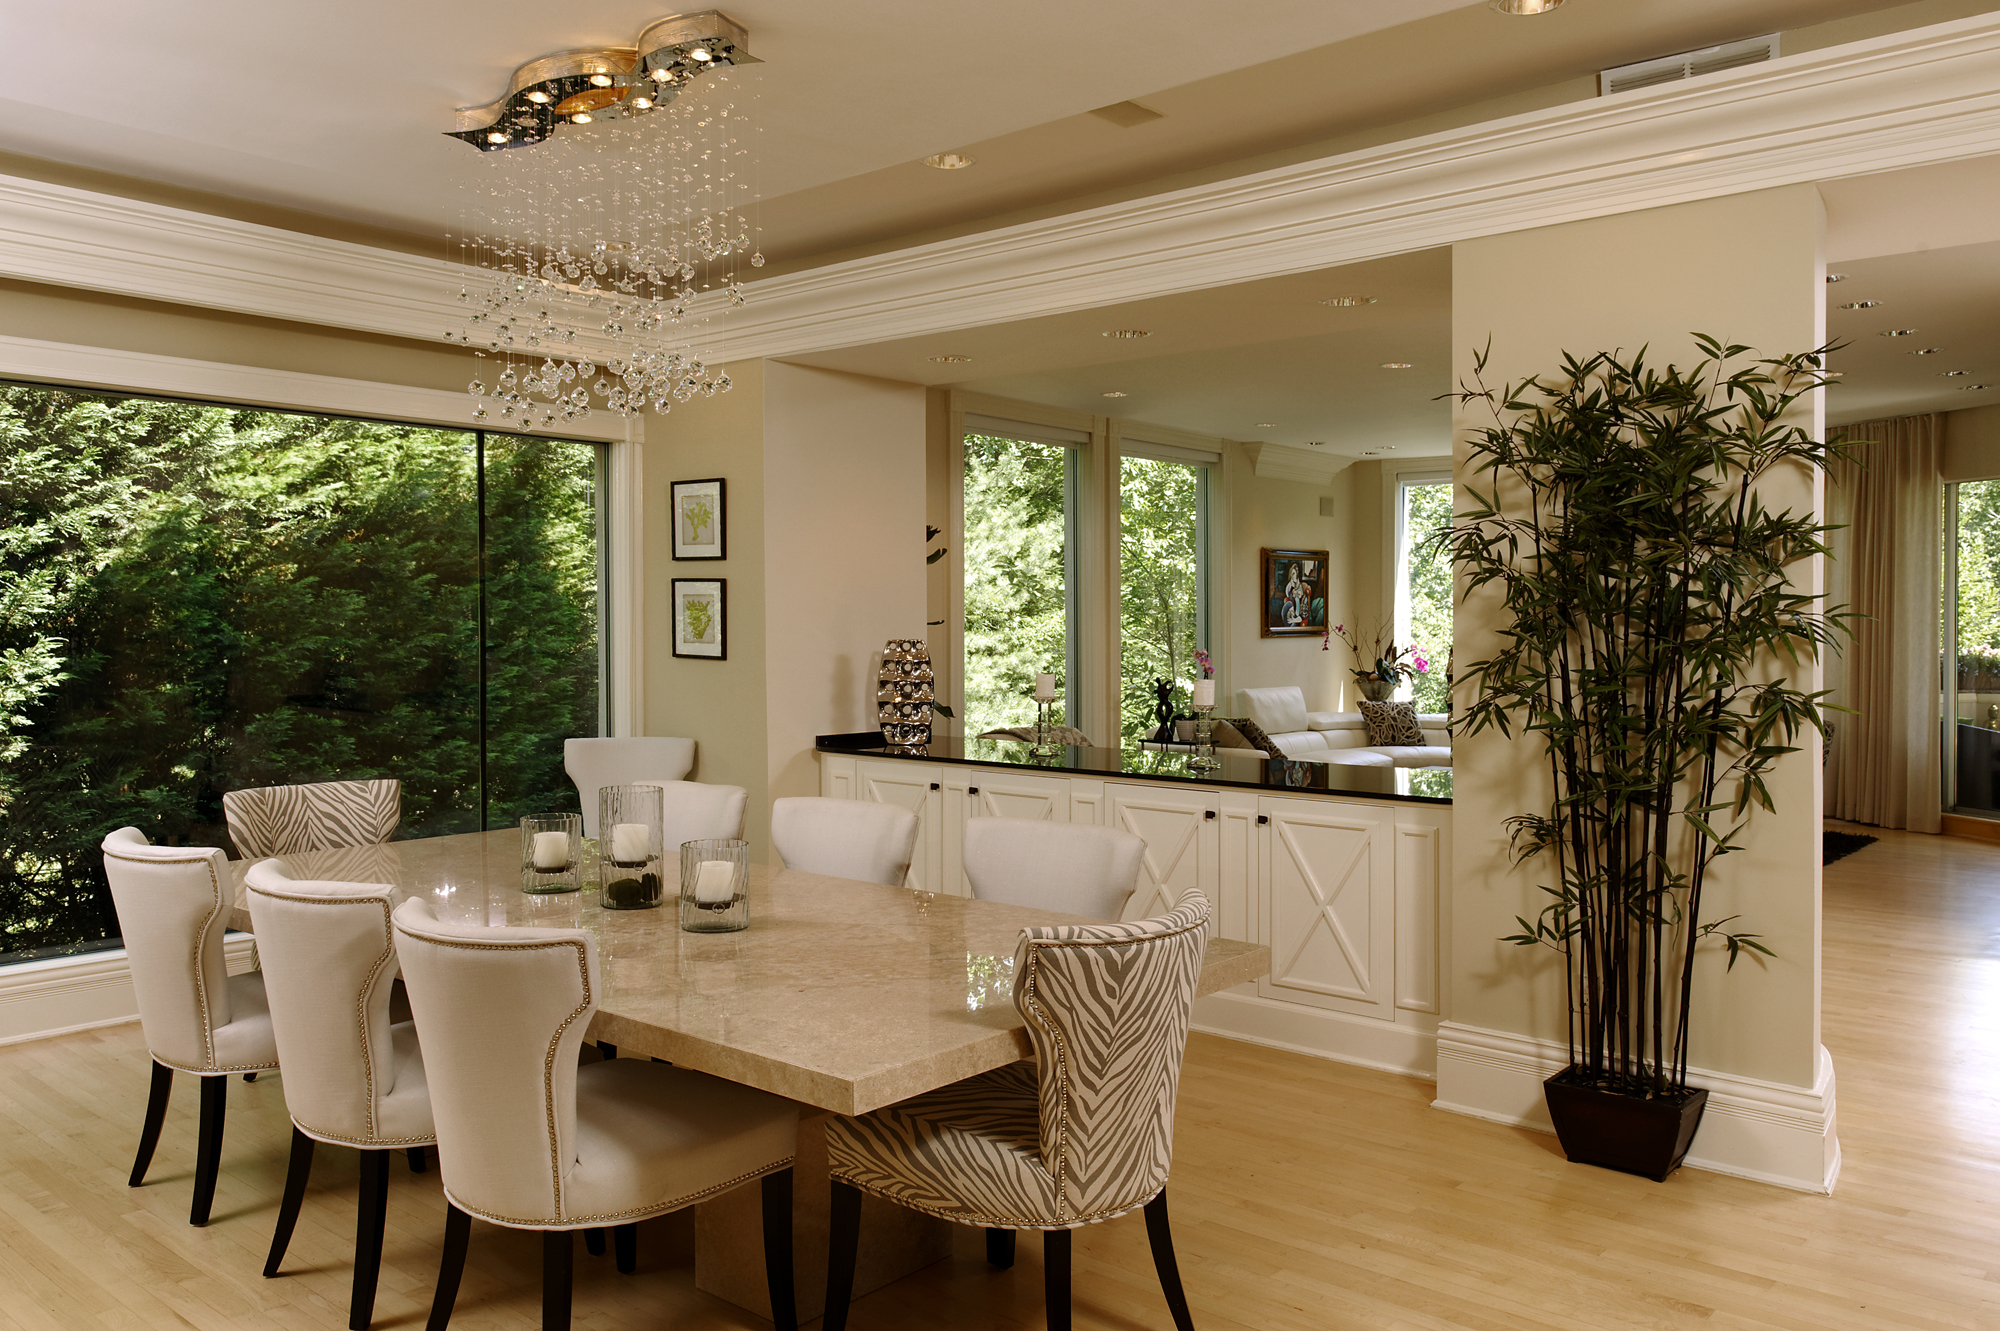 This is how dining room renovation will look like in 10 for Dining room renovation